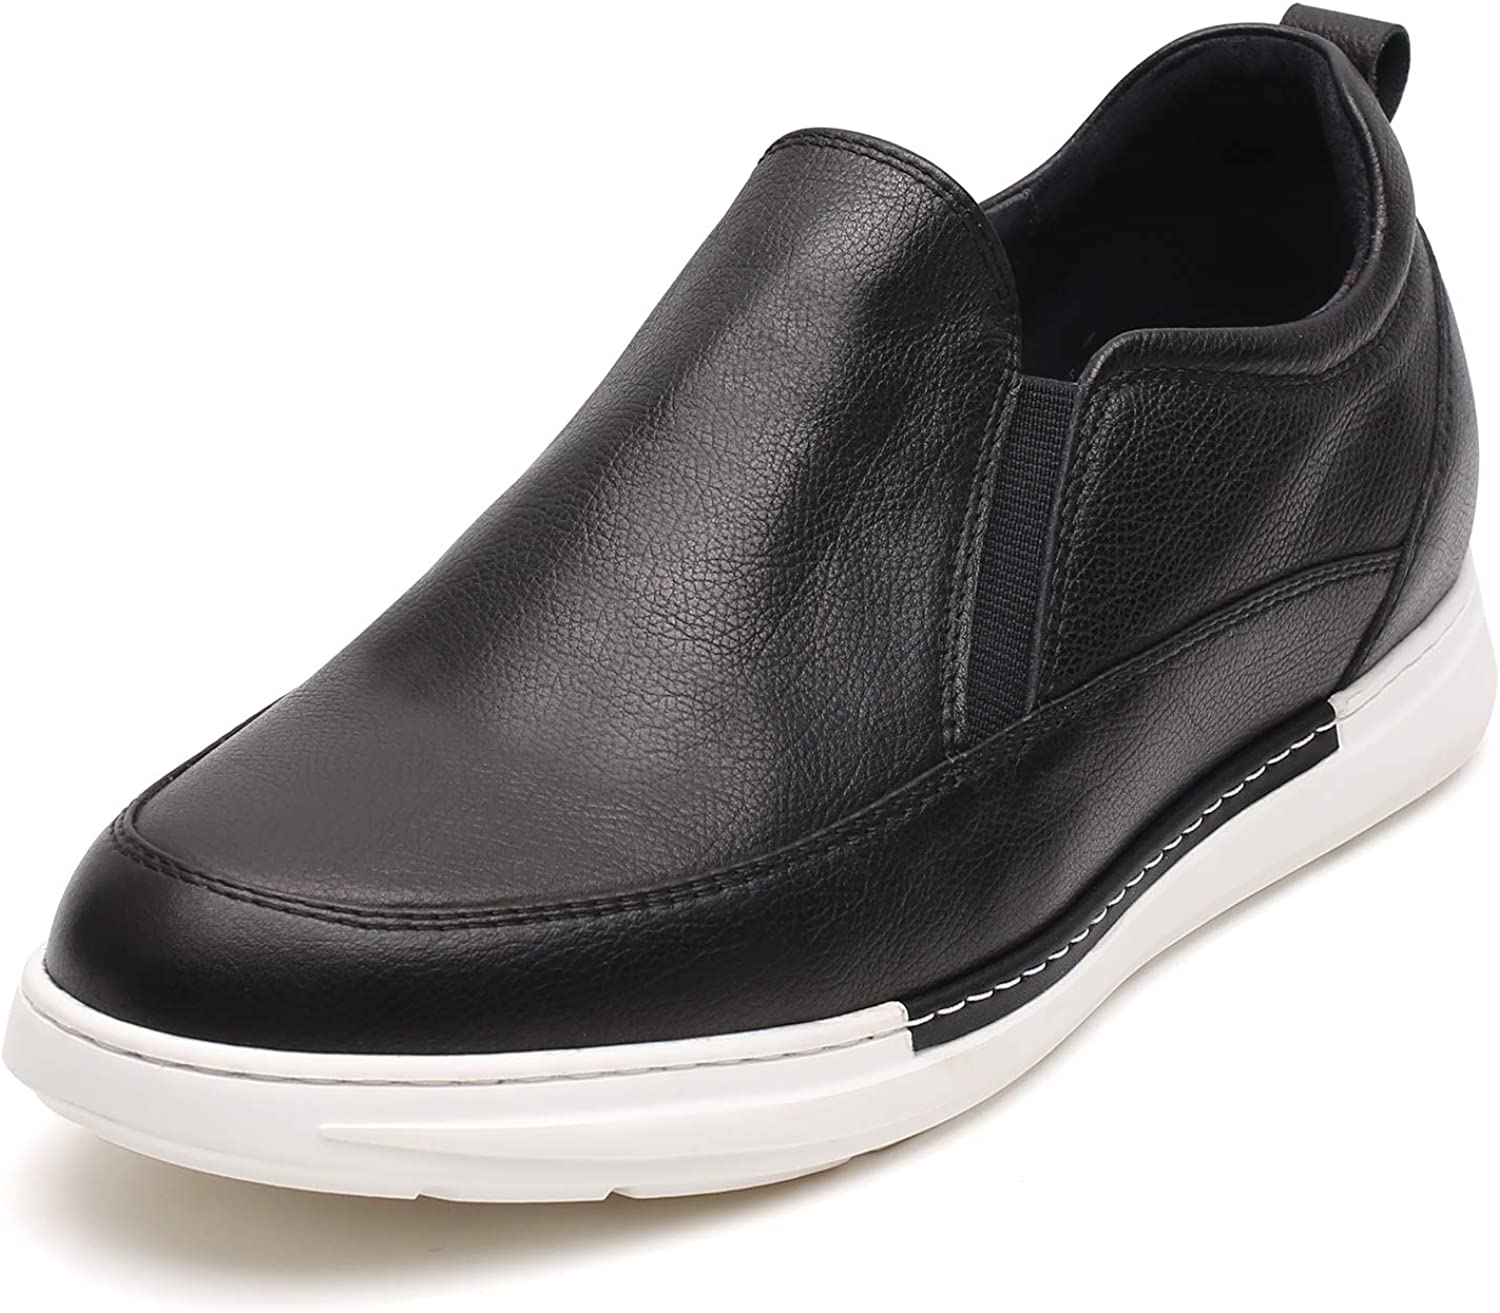 CHAMARIPA Men's Height Increasing Elevator Shoes Dress Shoes Slip On Square Toe Loafer Business Shoes 2.36'' Taller H01YLK67611